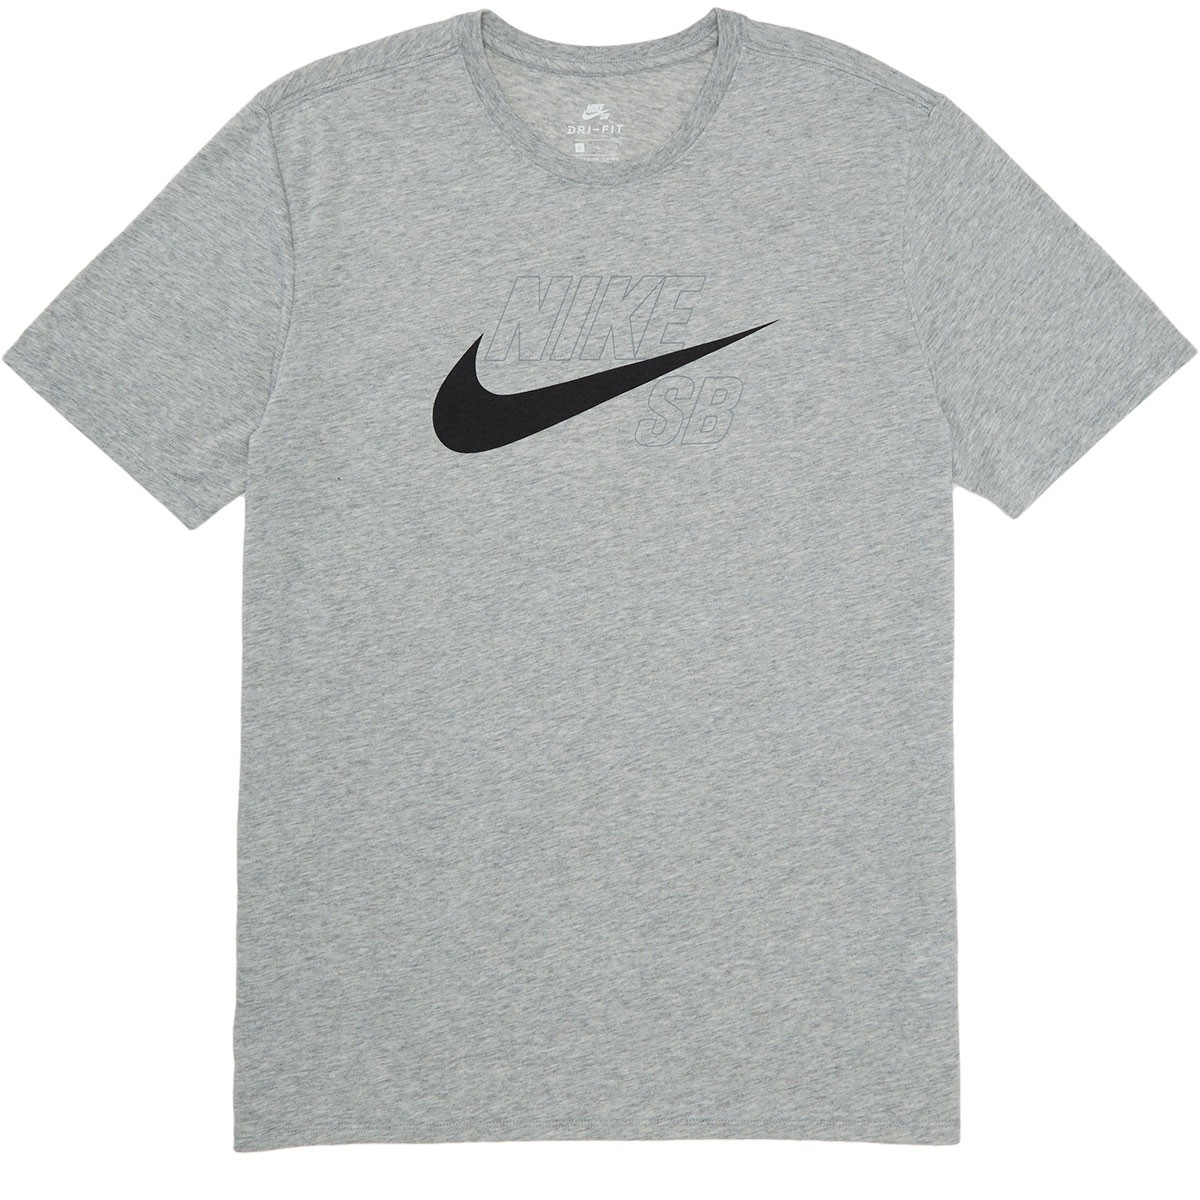 91206971 Nike SB Dri-Fit Swoosh Logo T-Shirt - Dark Grey Heather/Black